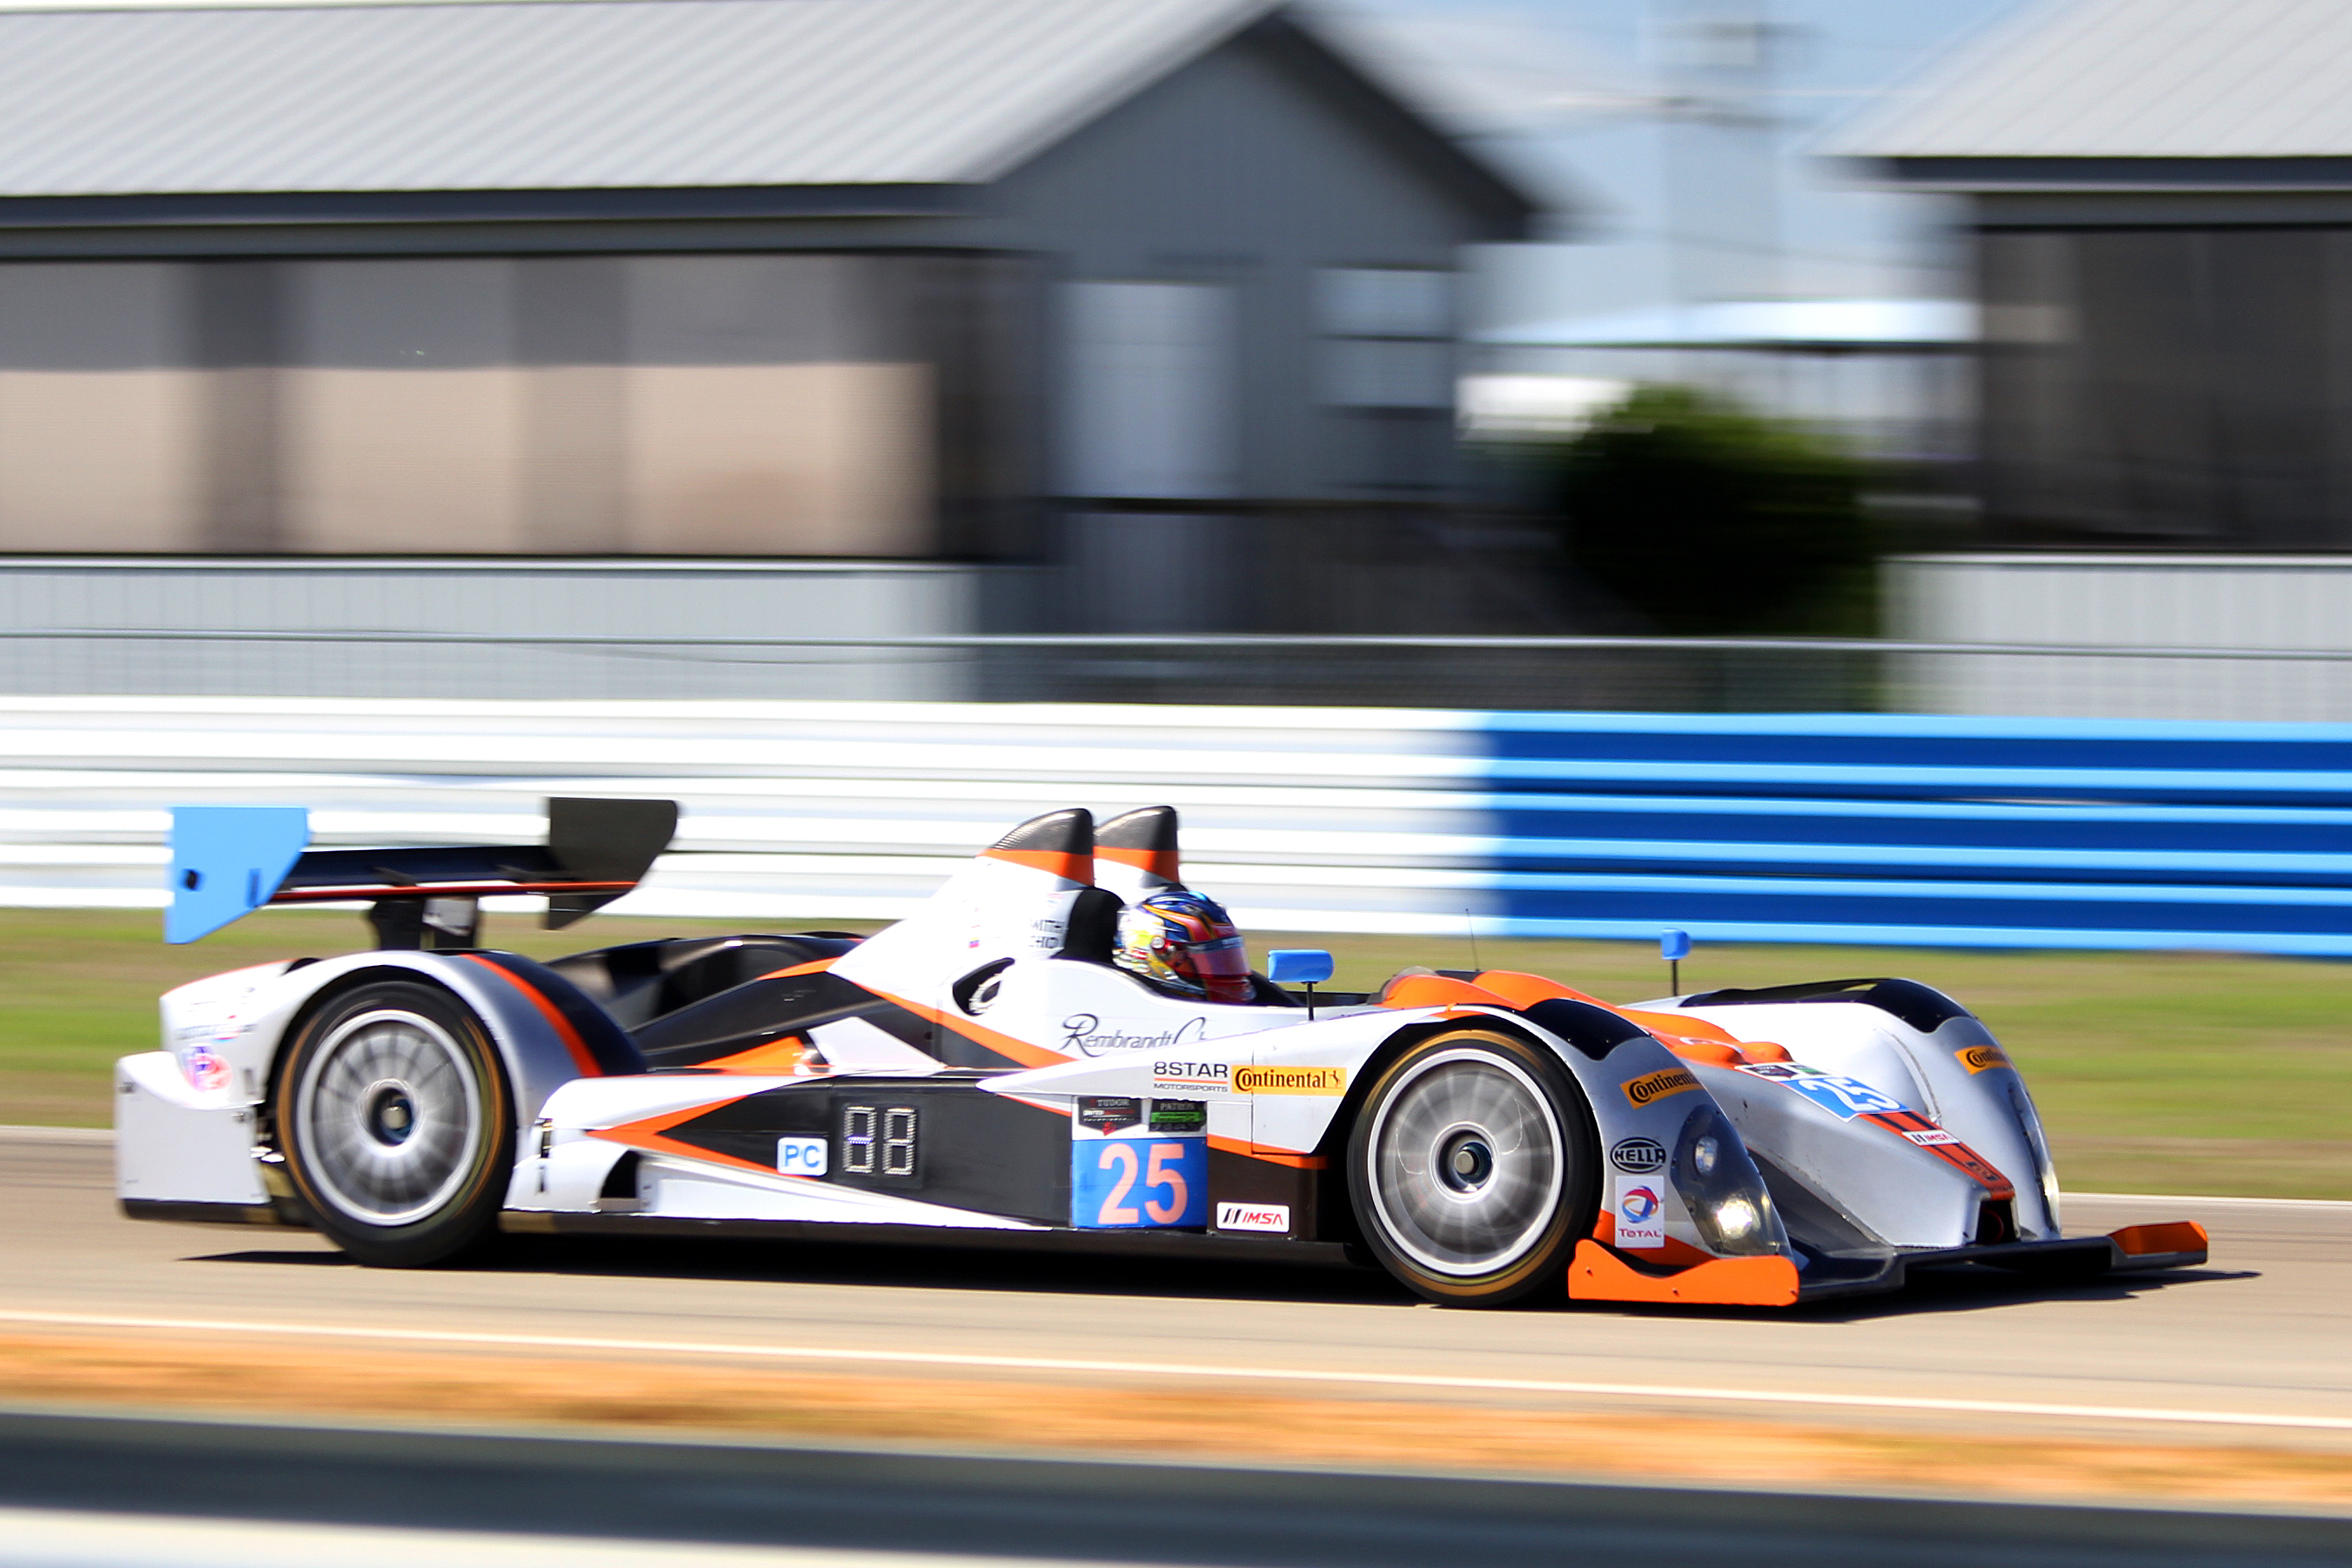 The #25 8Star Oreca Chevrolet was quickest in PC even though it crashed at Turn Seven halfway through the first sessions. (Chris Jasurek/Epoch Times)